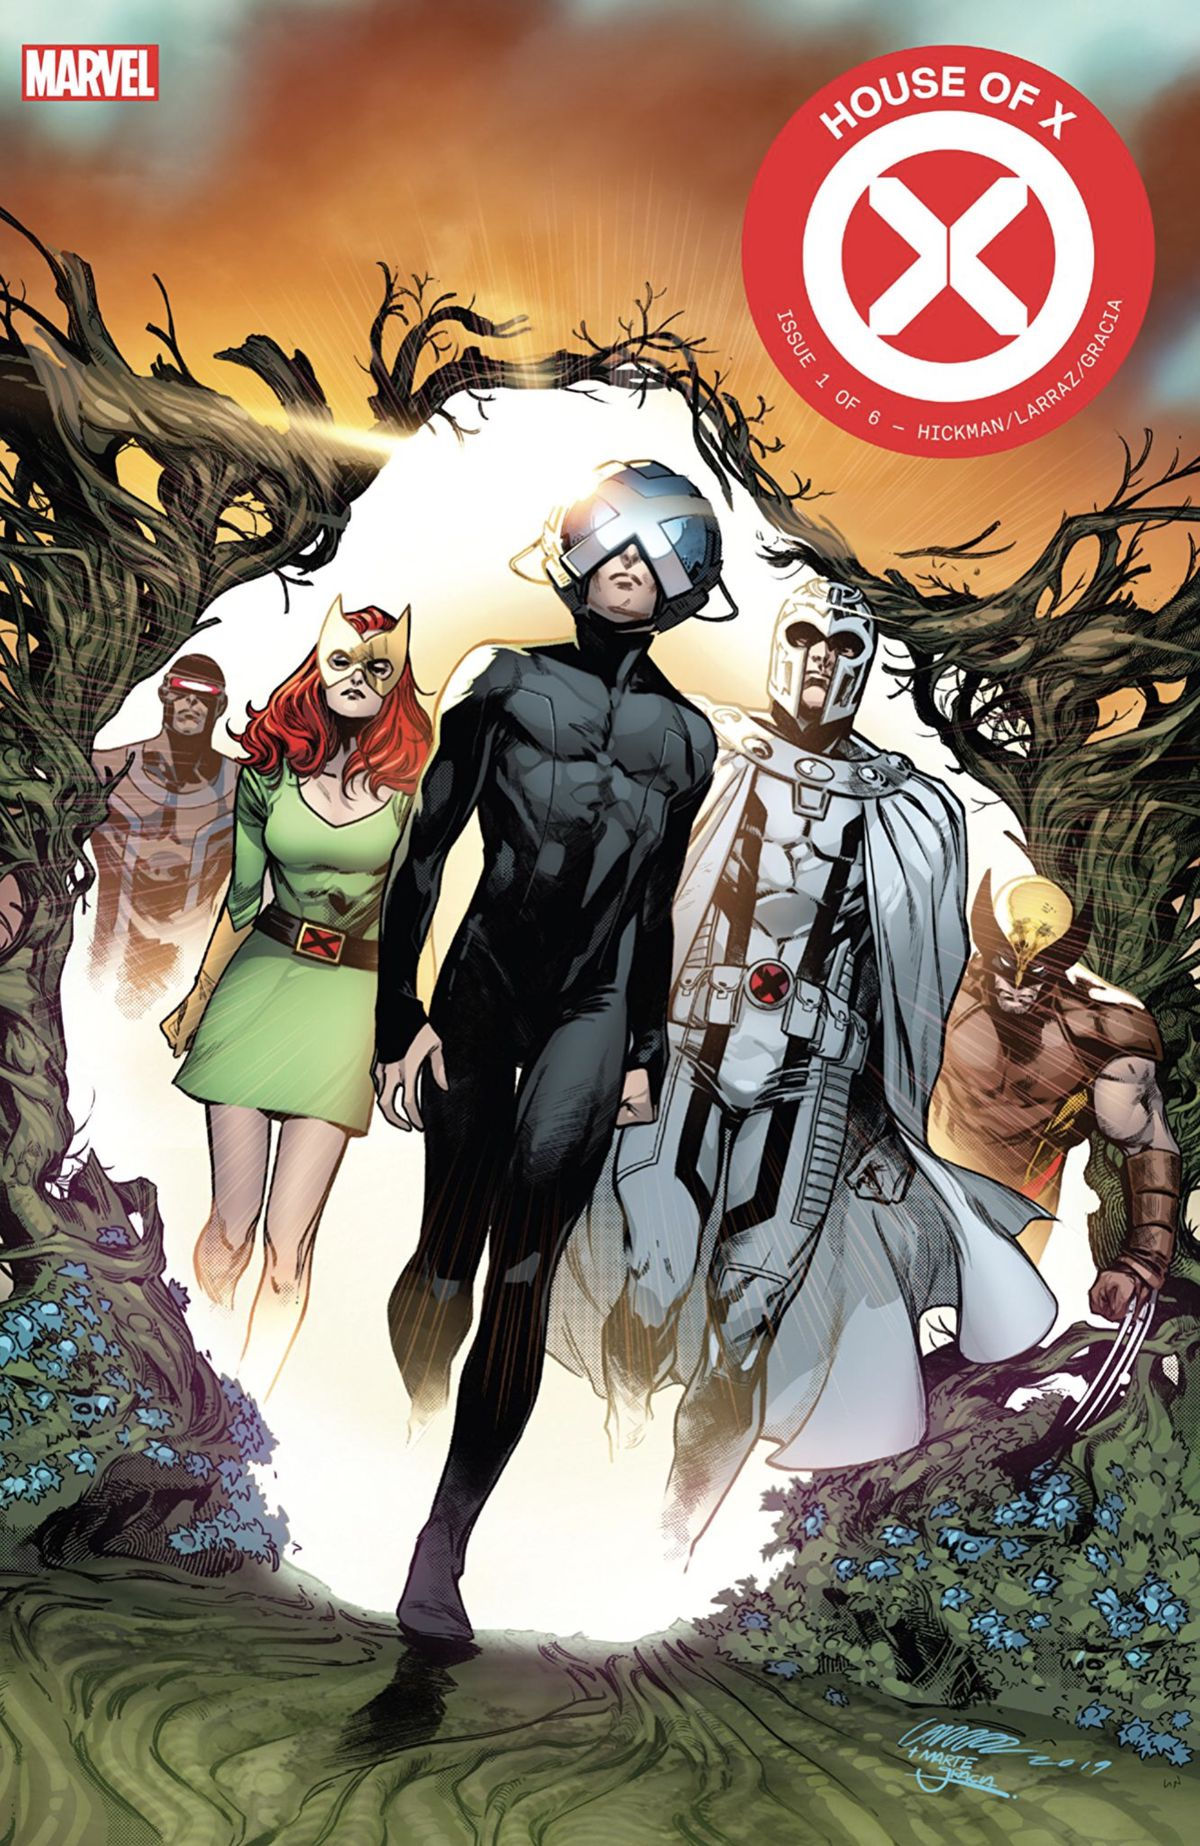 Professor X walks out of a Krakoa gate, flanked by Magneto, Jean Grey, Cyclops, and Wolverine, on the cover of House of X #1, Marvel Comics (2019).